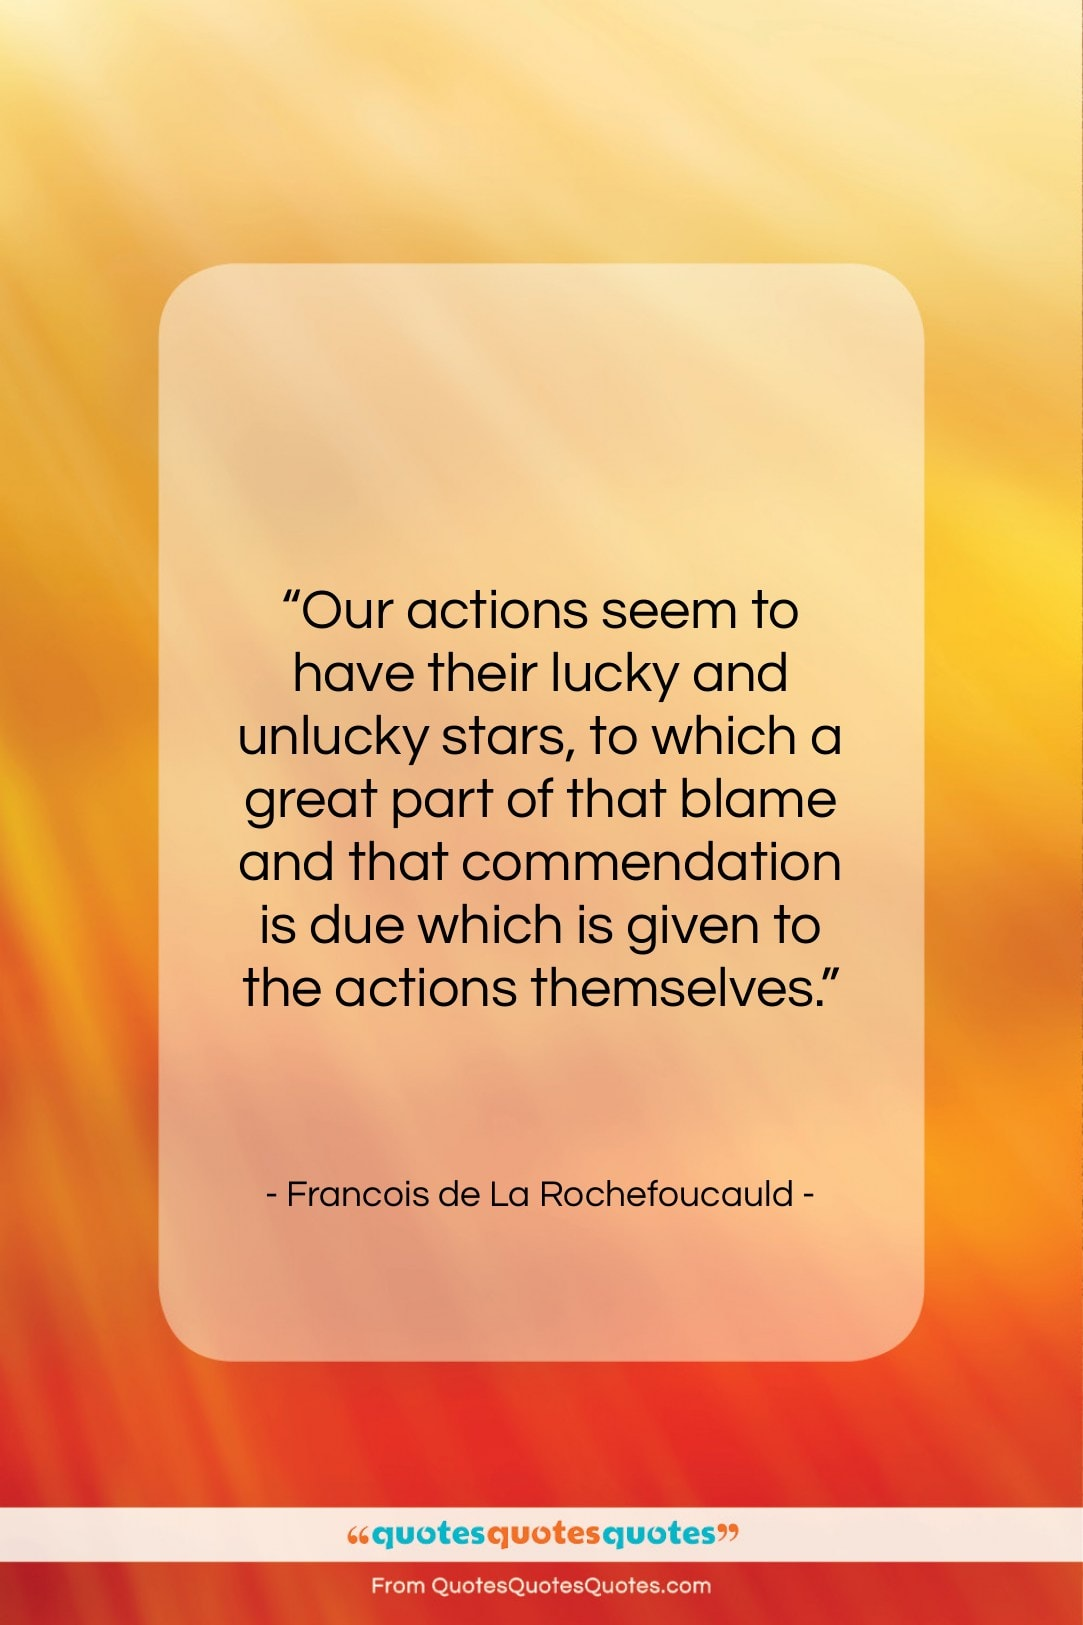 """Francois de La Rochefoucauld quote: """"Our actions seem to have their lucky…""""- at QuotesQuotesQuotes.com"""